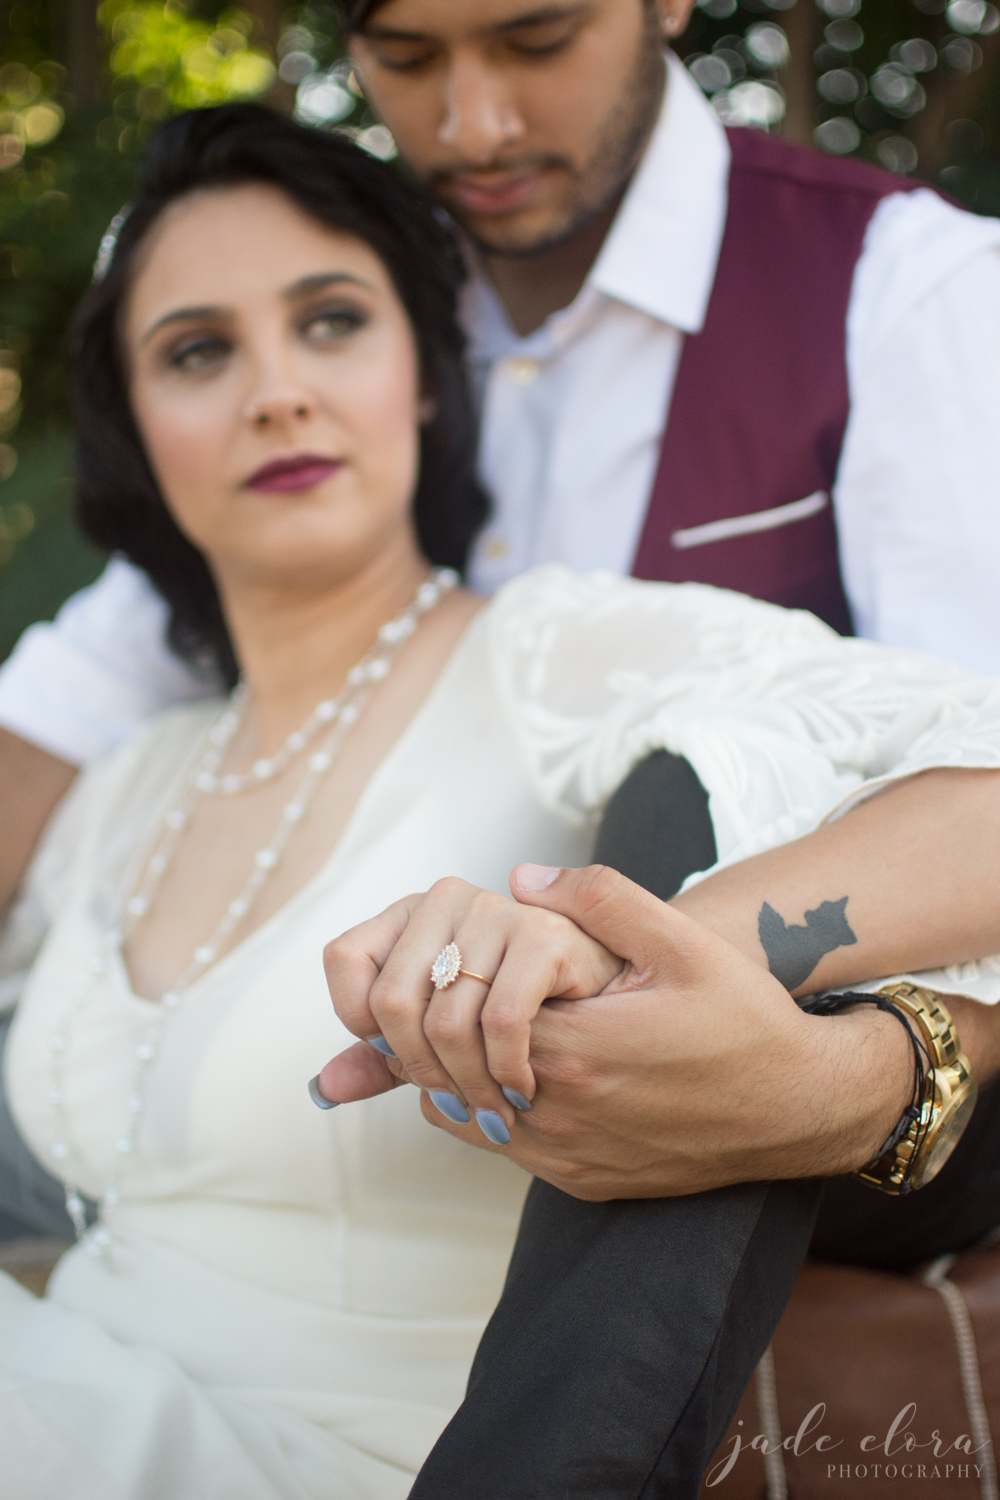 Glendale-Wedding-Photographer-Blog-Jade-Elora-2017-278.jpg